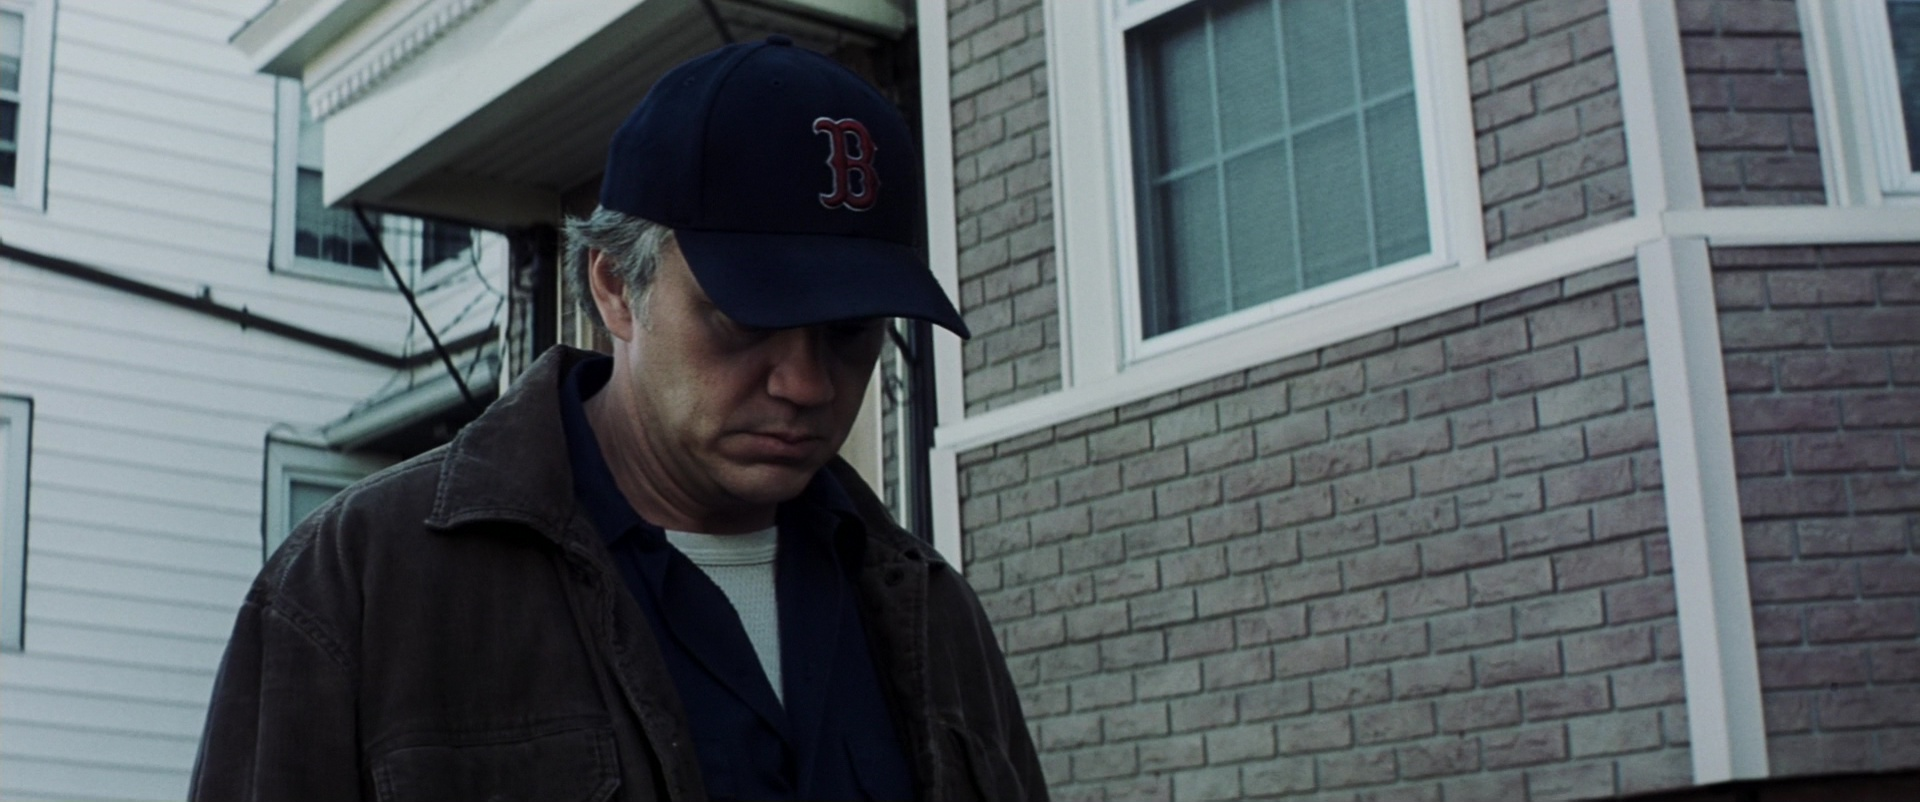 Boston Red Sox Baseball Team Blue Cap Worn By Tim Robbins